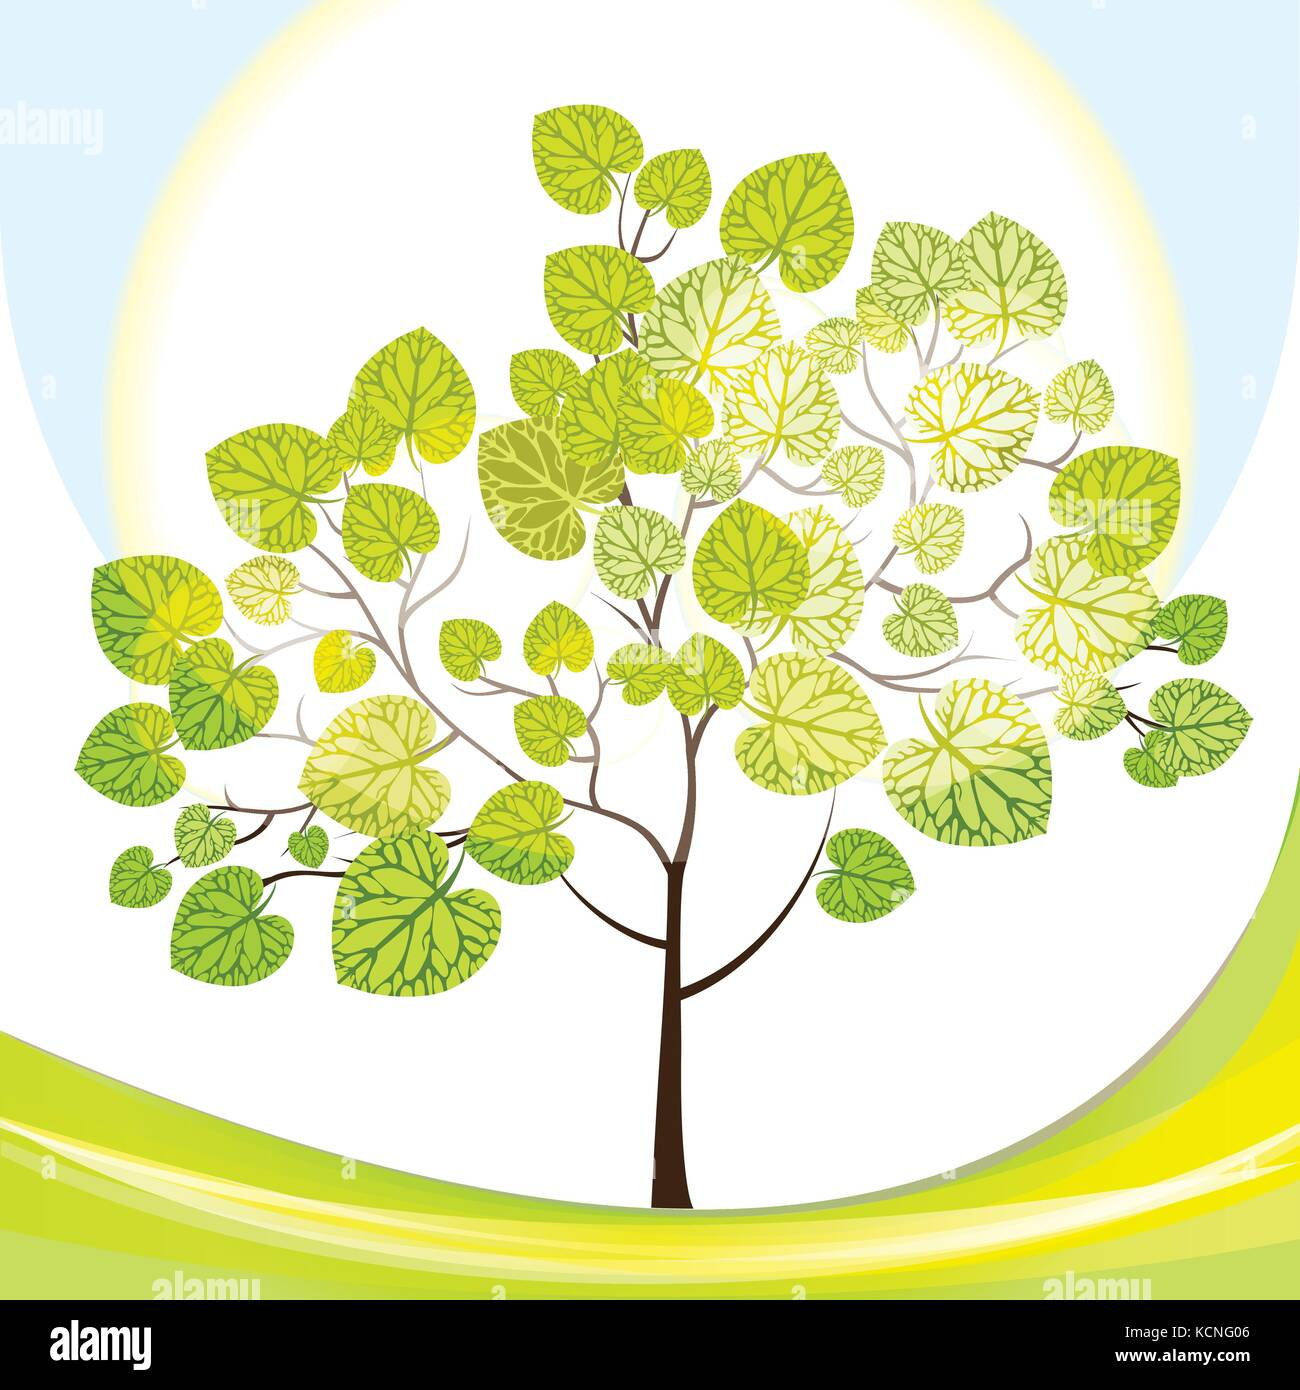 tree with green leaves, sunny day, vector illustration - Stock Vector